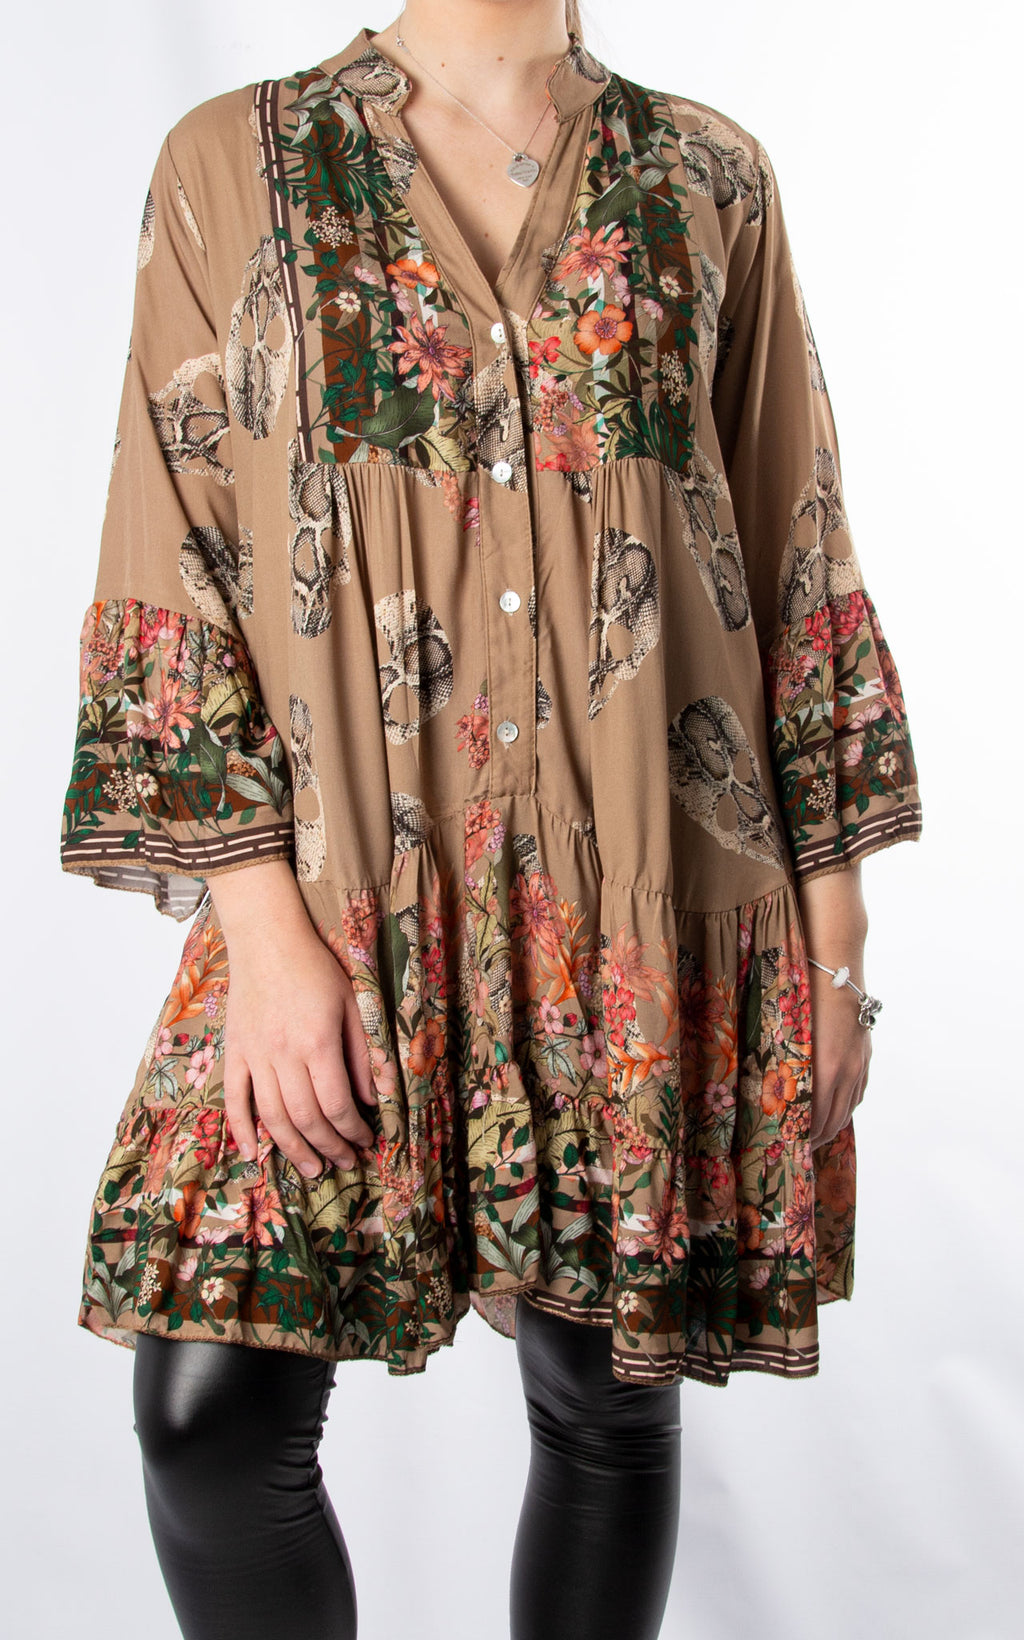 Alex Smock Dress | Skull & Roses | Camel